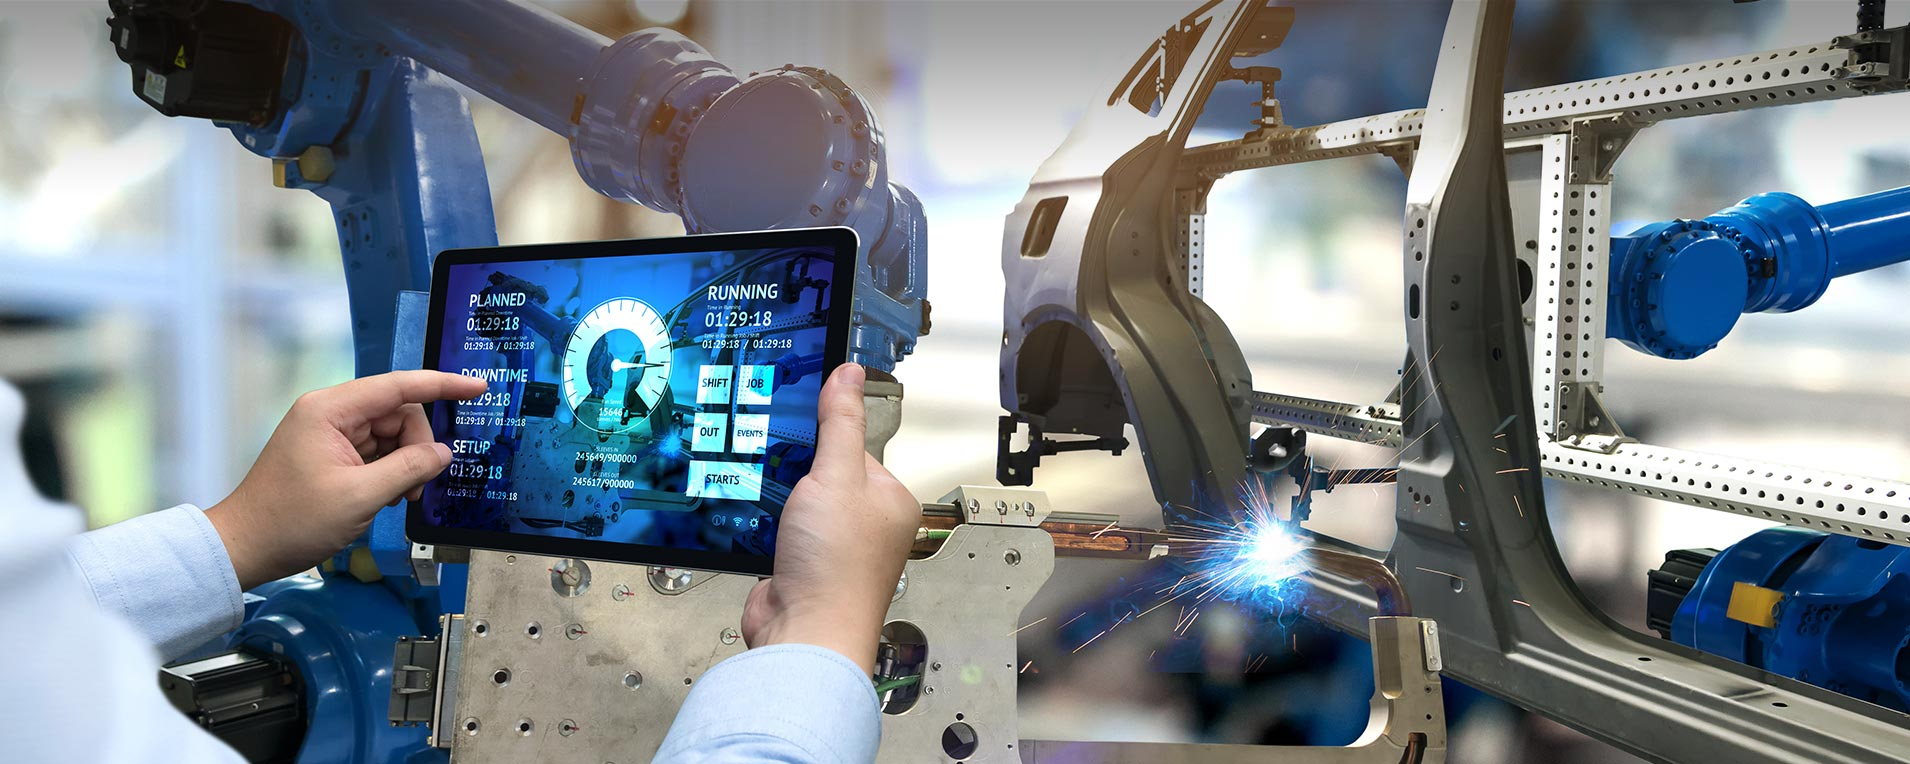 4 Ways Artificial Intelligence Will Impact Manufacturing